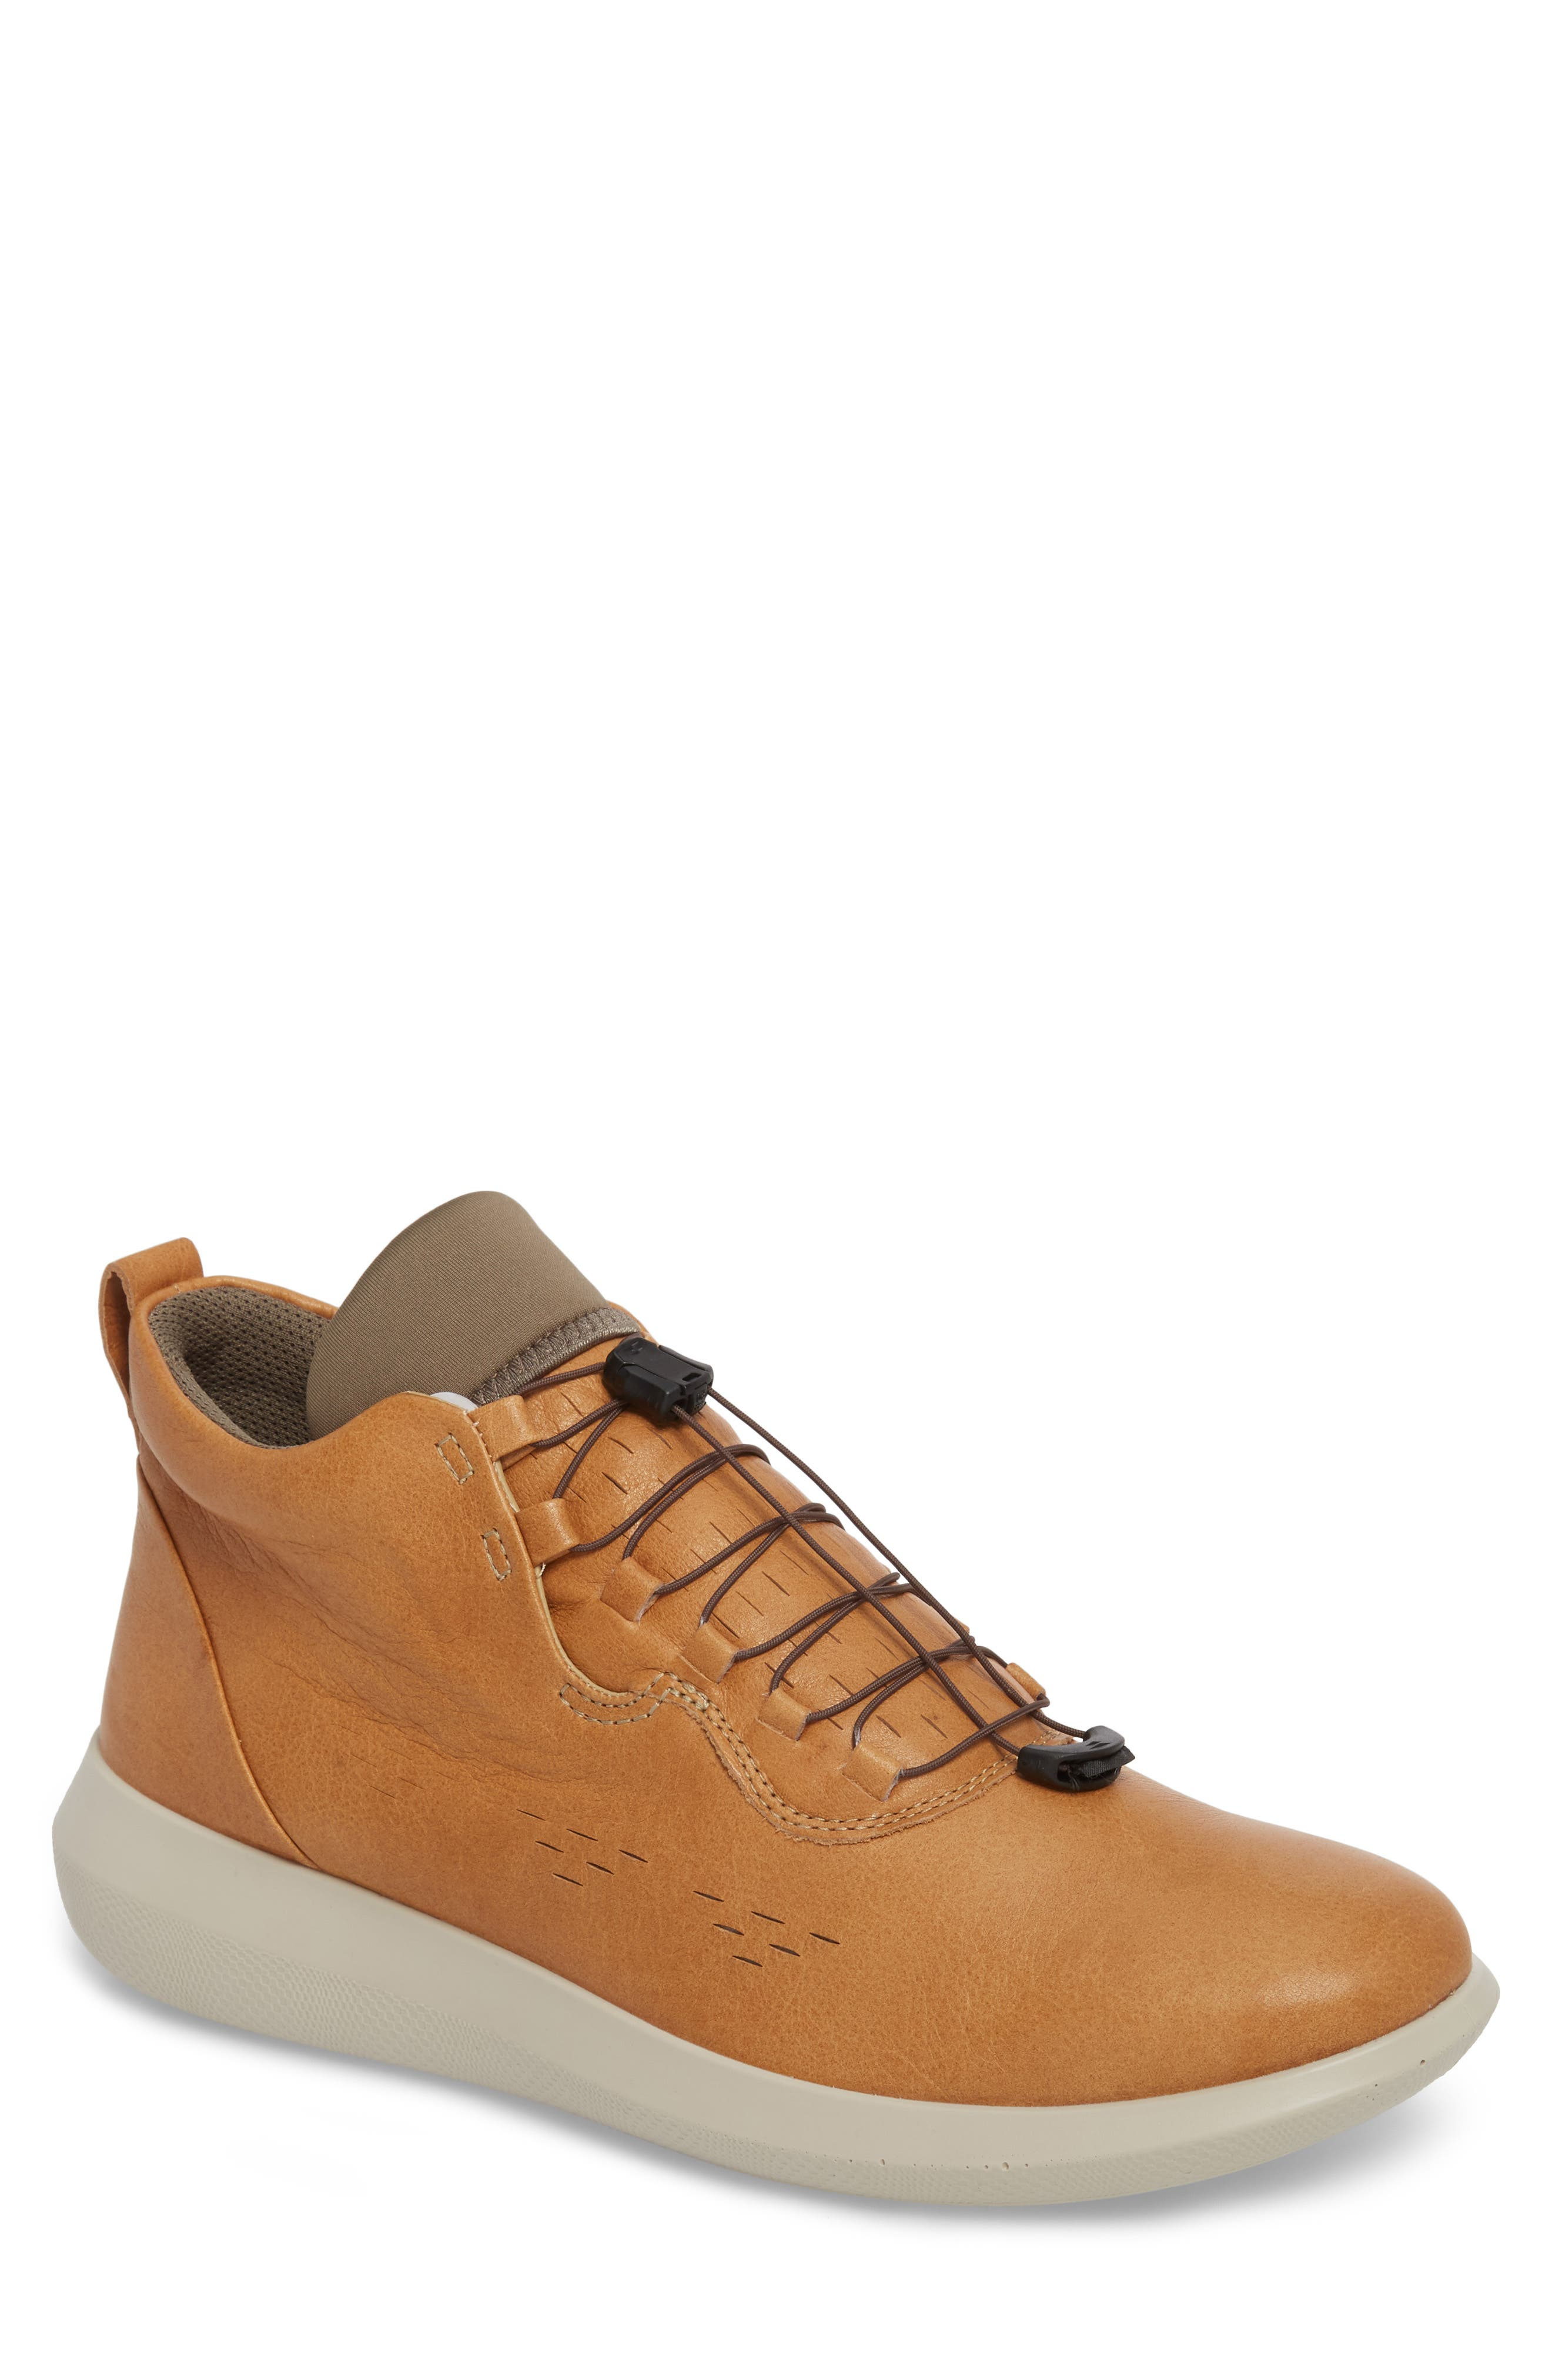 Main Image - ECCO Scinapse High Top Sneaker (Men)